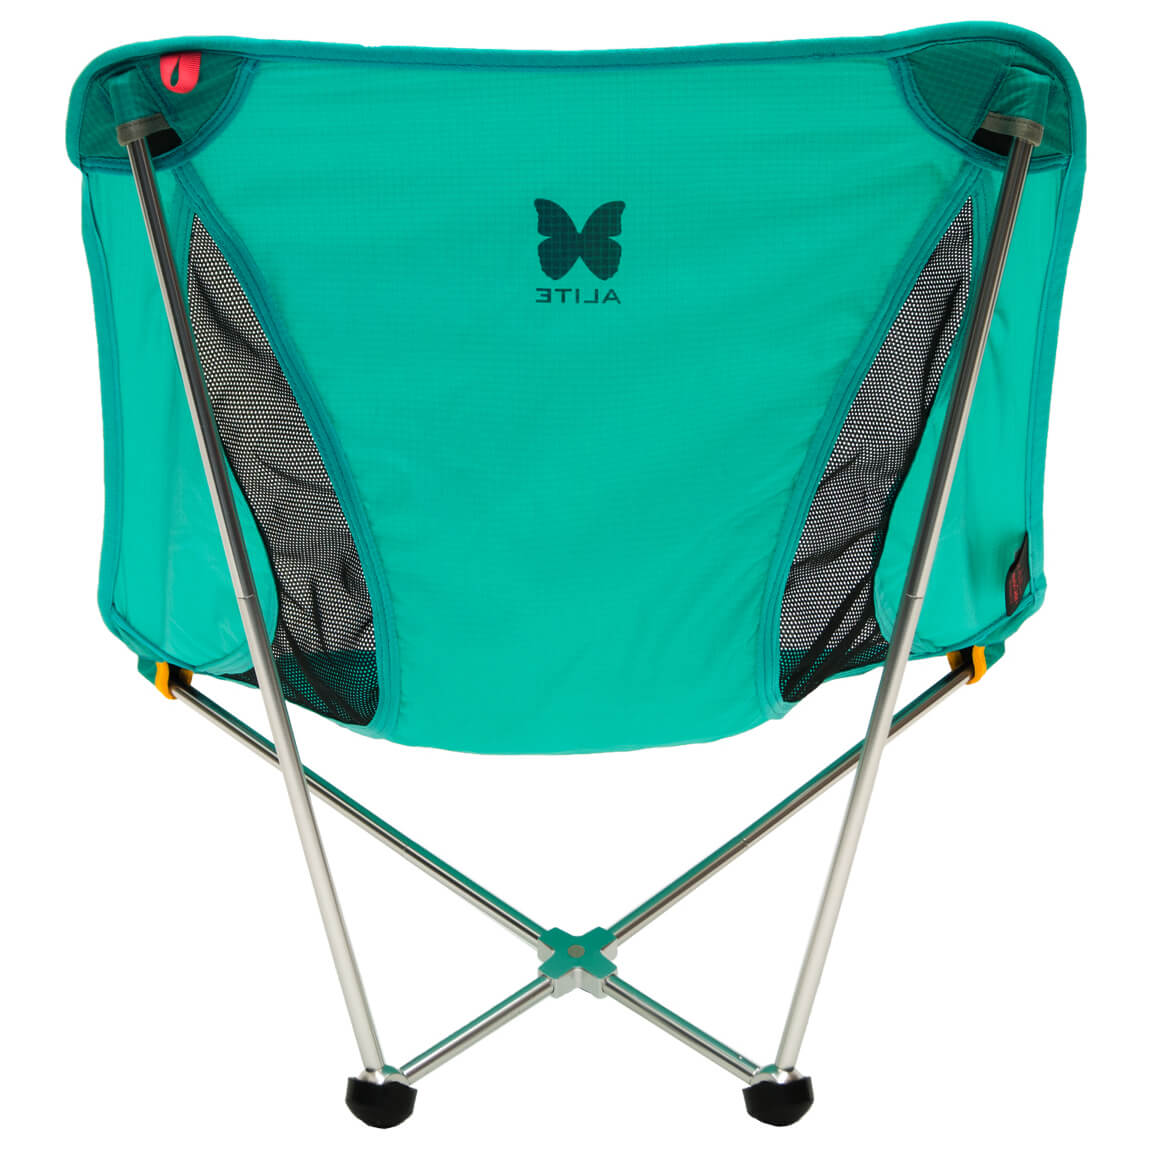 alite monarch chair canada light green covers camping free uk delivery